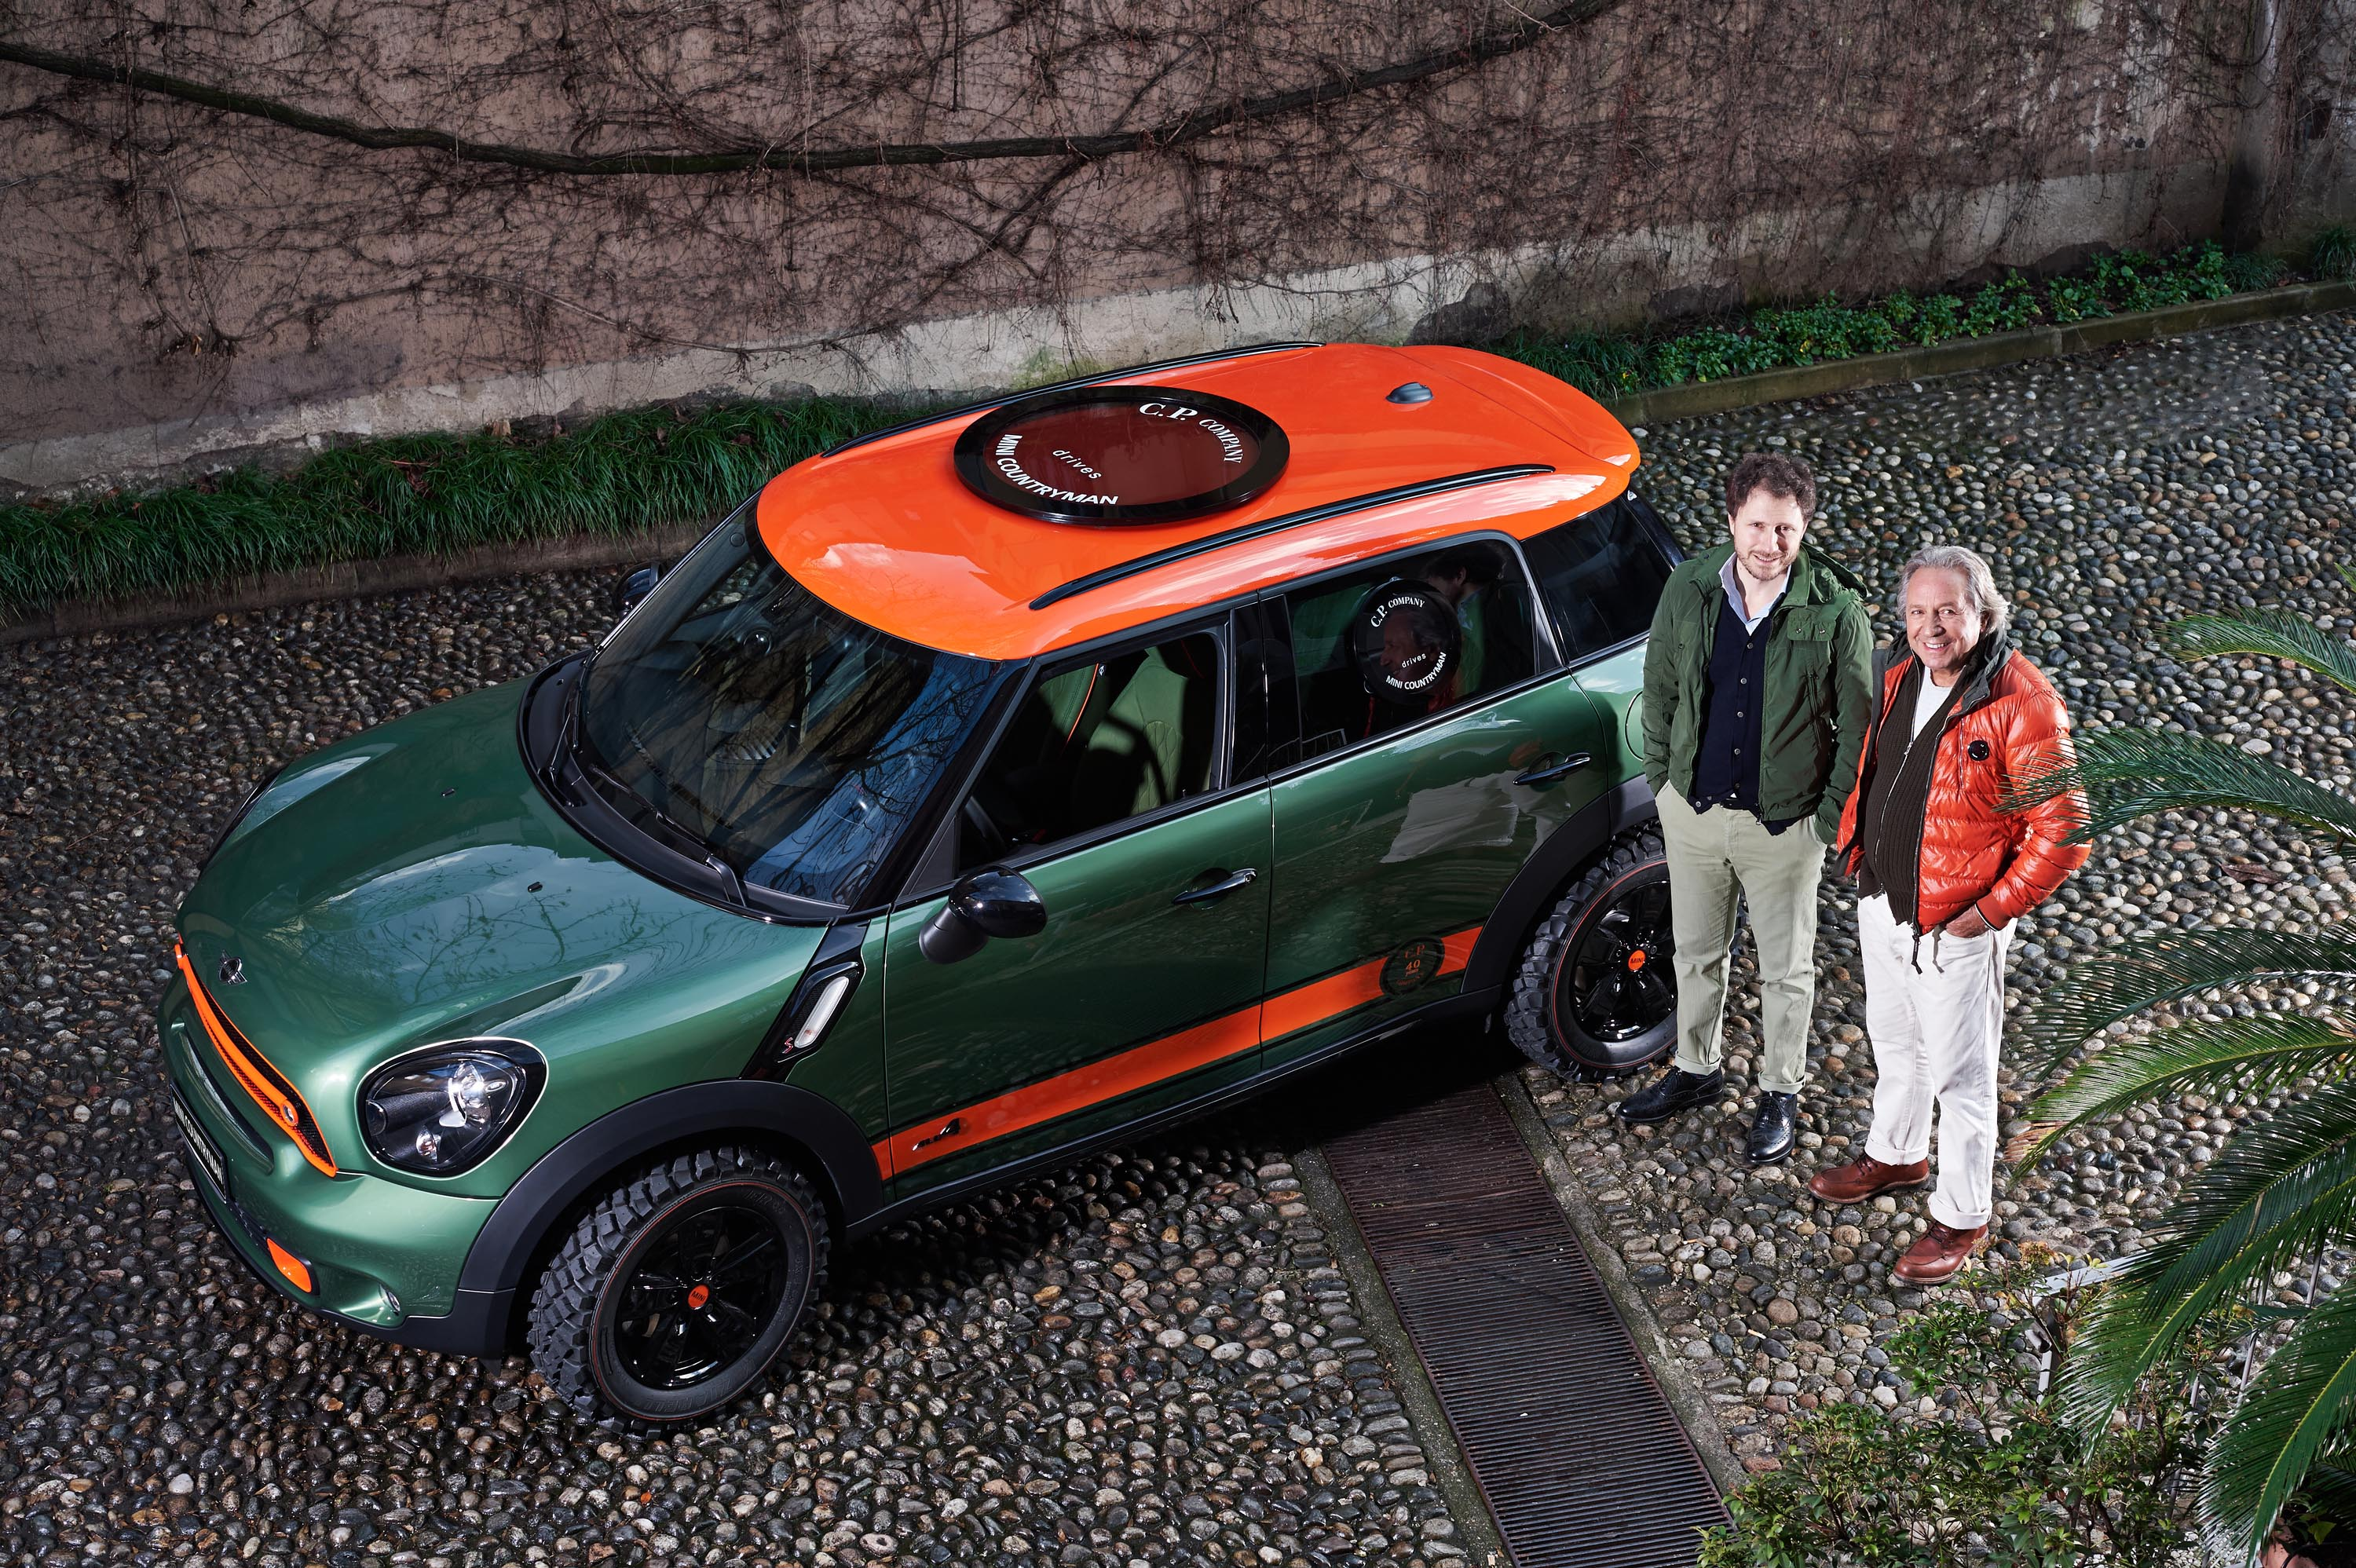 MINI Countryman e C.P. Company: partnership glamour